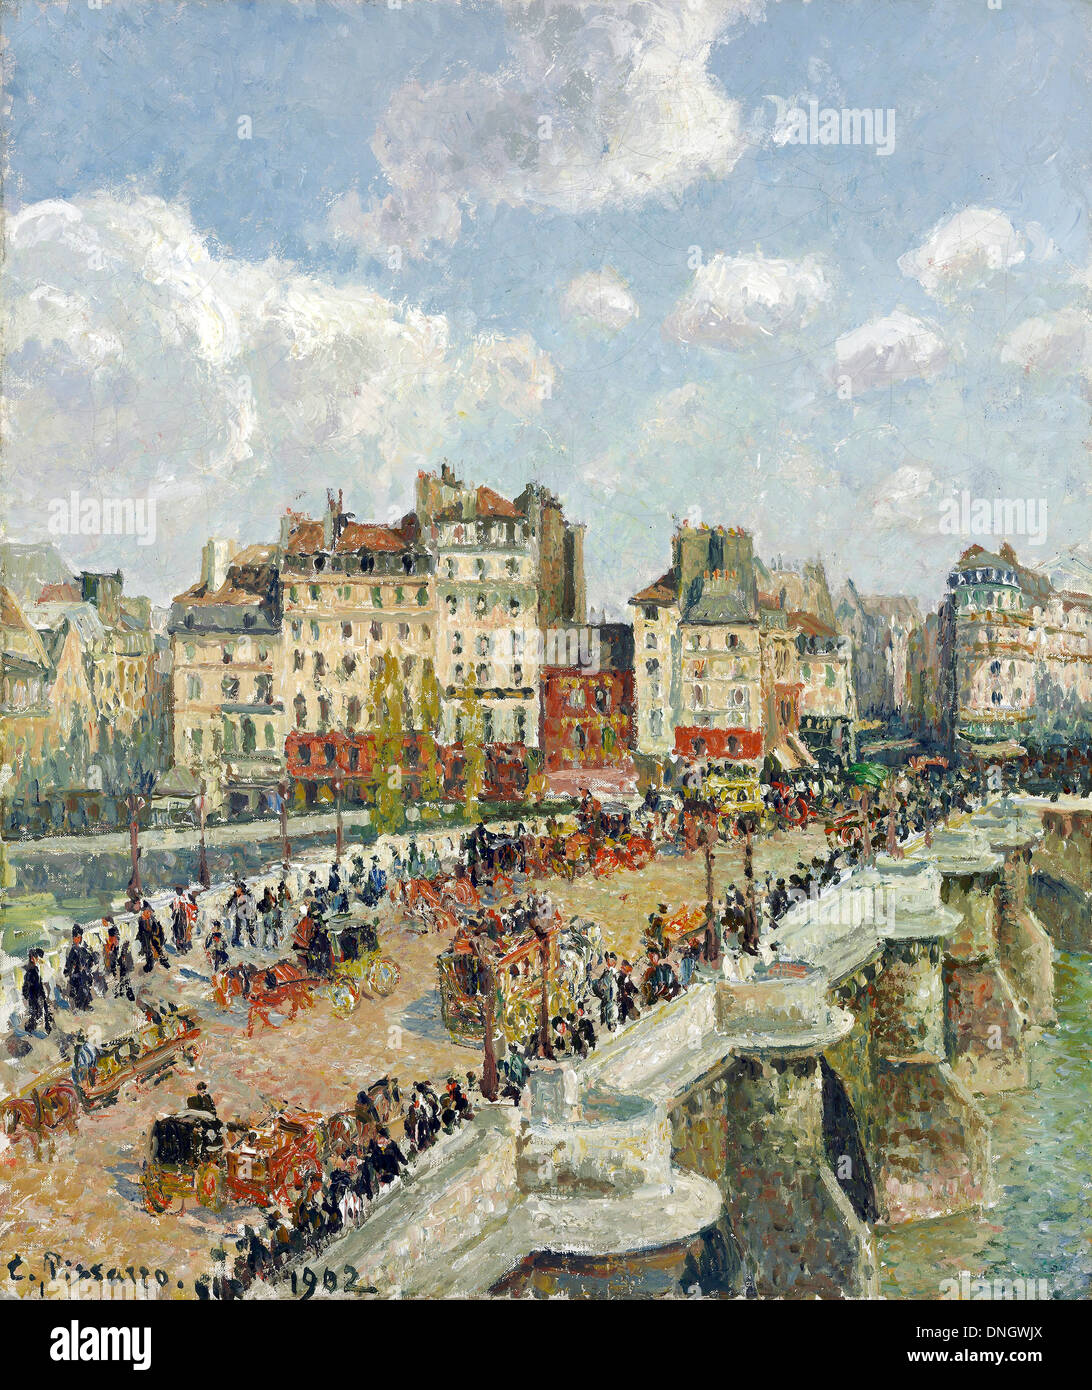 Camille Pissarro, The Pont-Neuf 1902 Oil on canvas. Museum of Fine Arts, Budapest, Hungary. - Stock Image